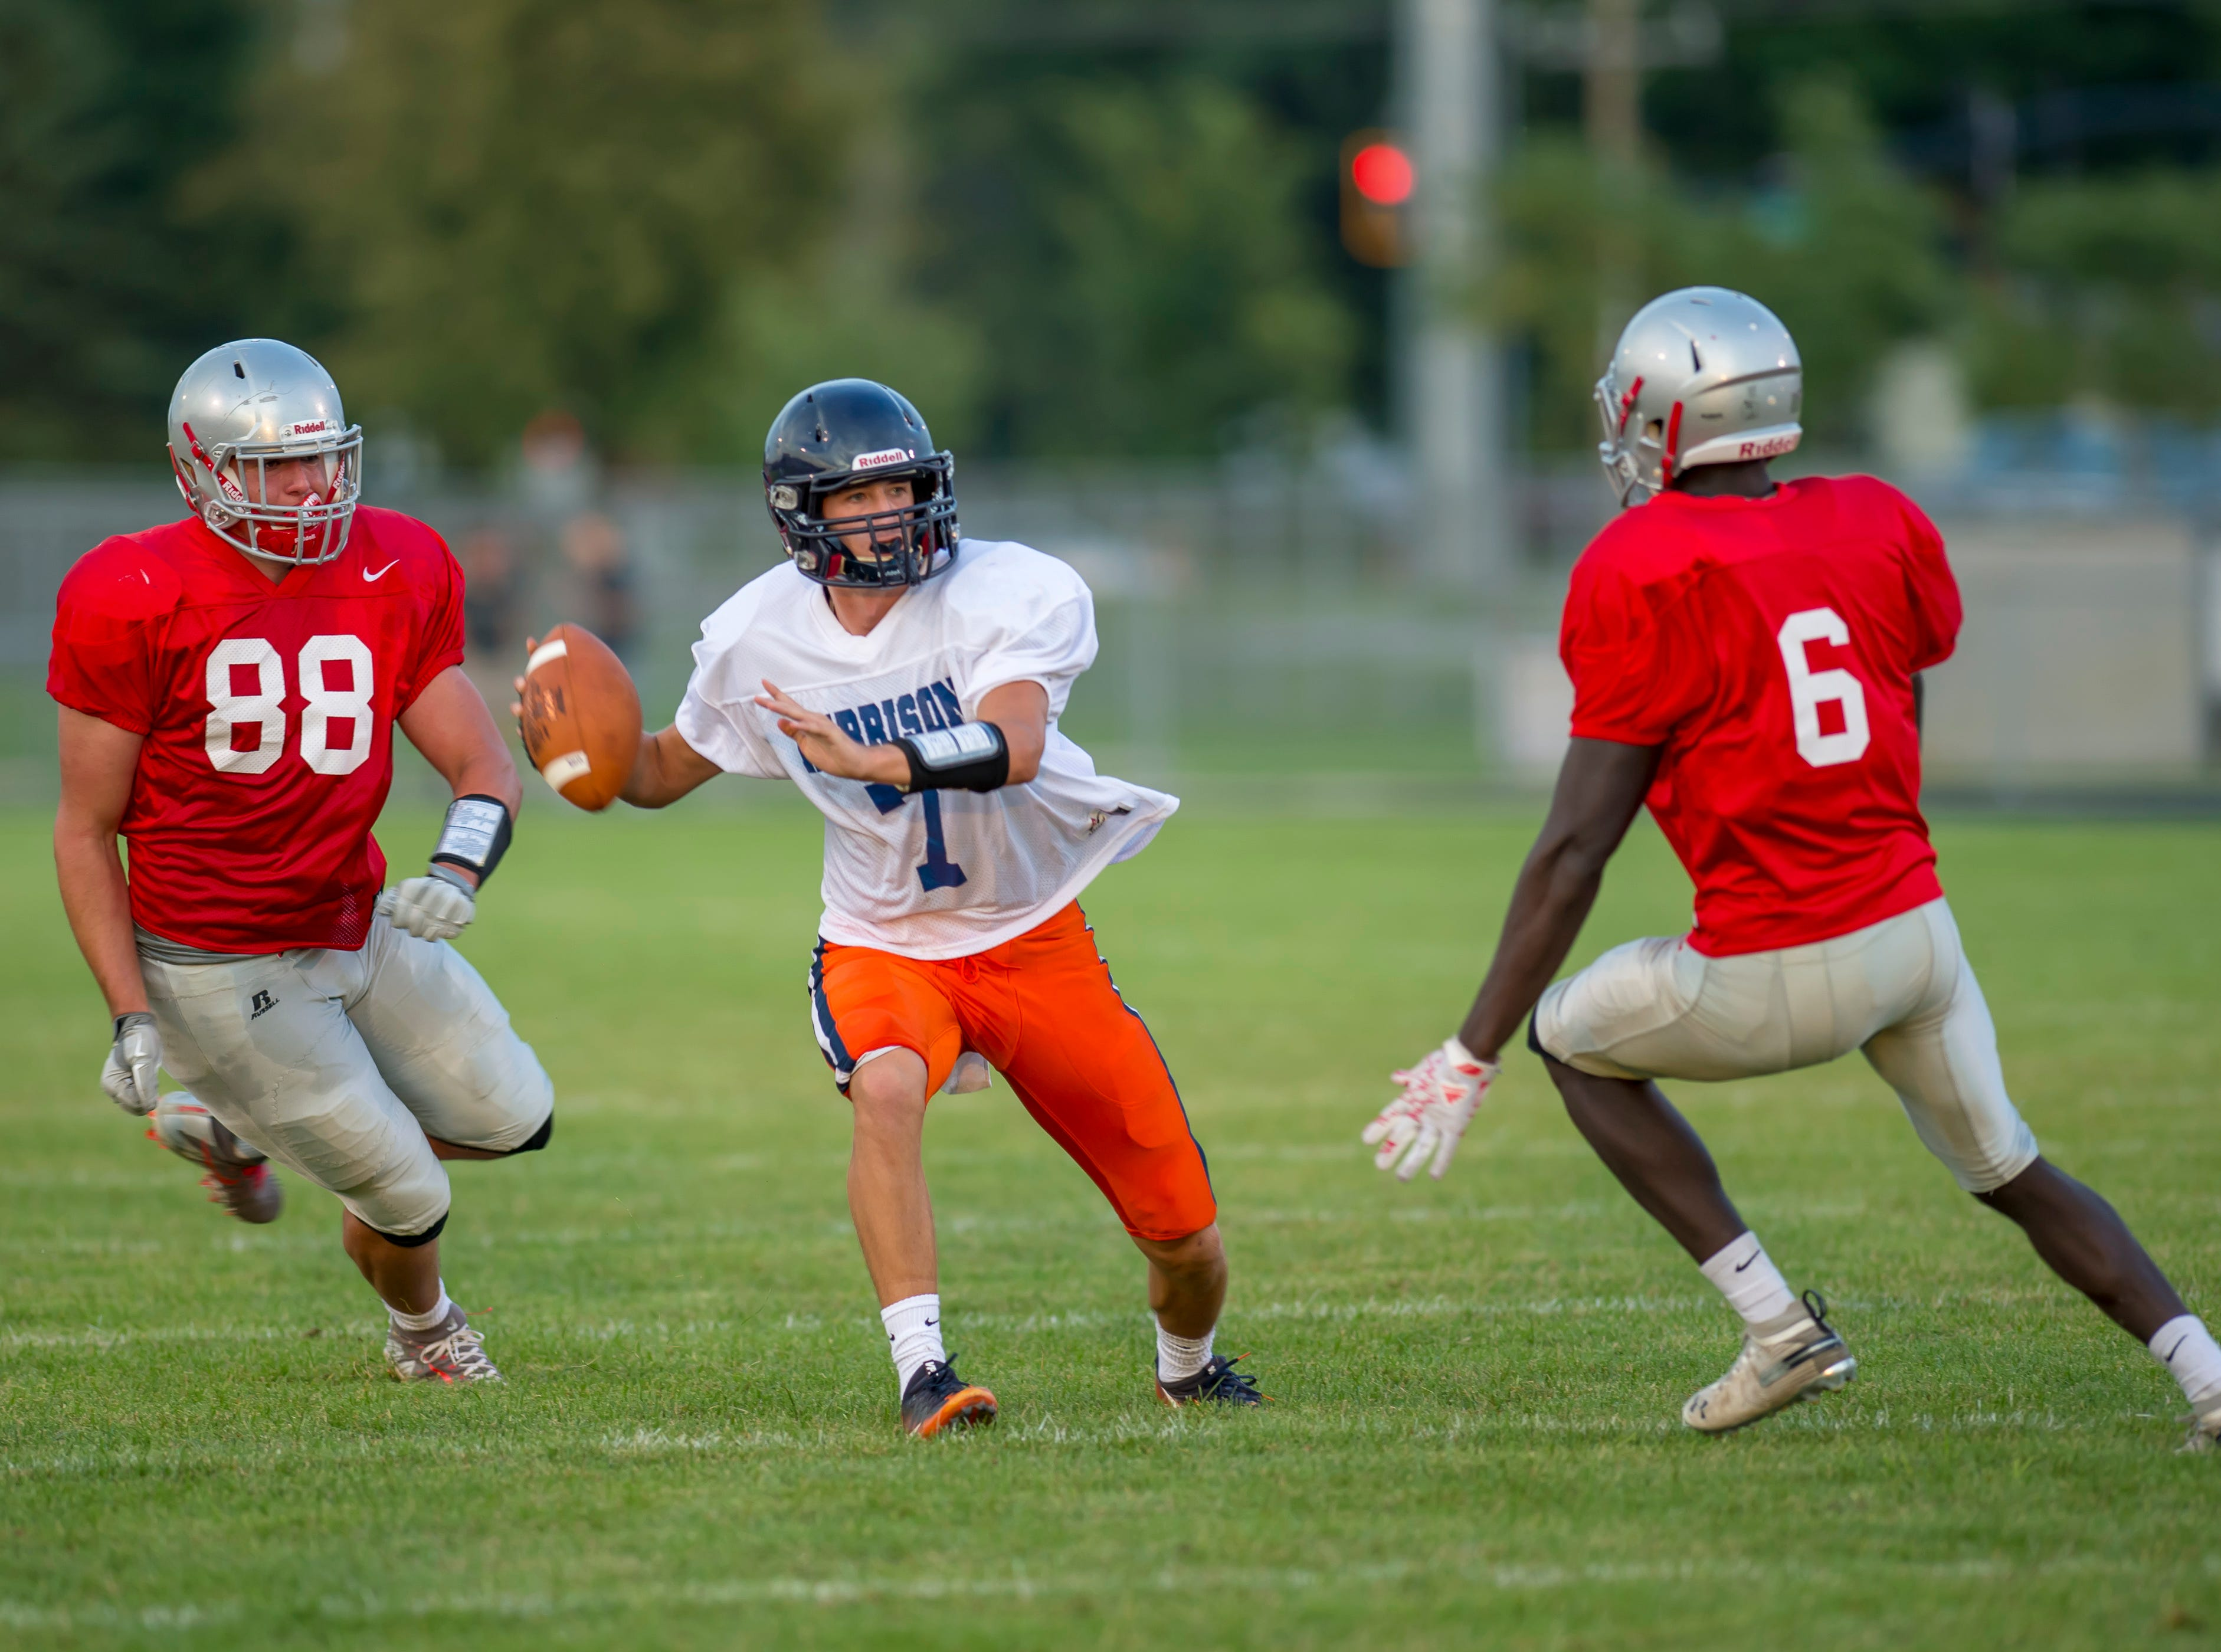 Andrew Jensen finds himself between George Karlaftis and Nelson Mbongo late in the football scrimmage between the Harrison Raiders and the West Lafayette Red Devils from Gordon Straley Field